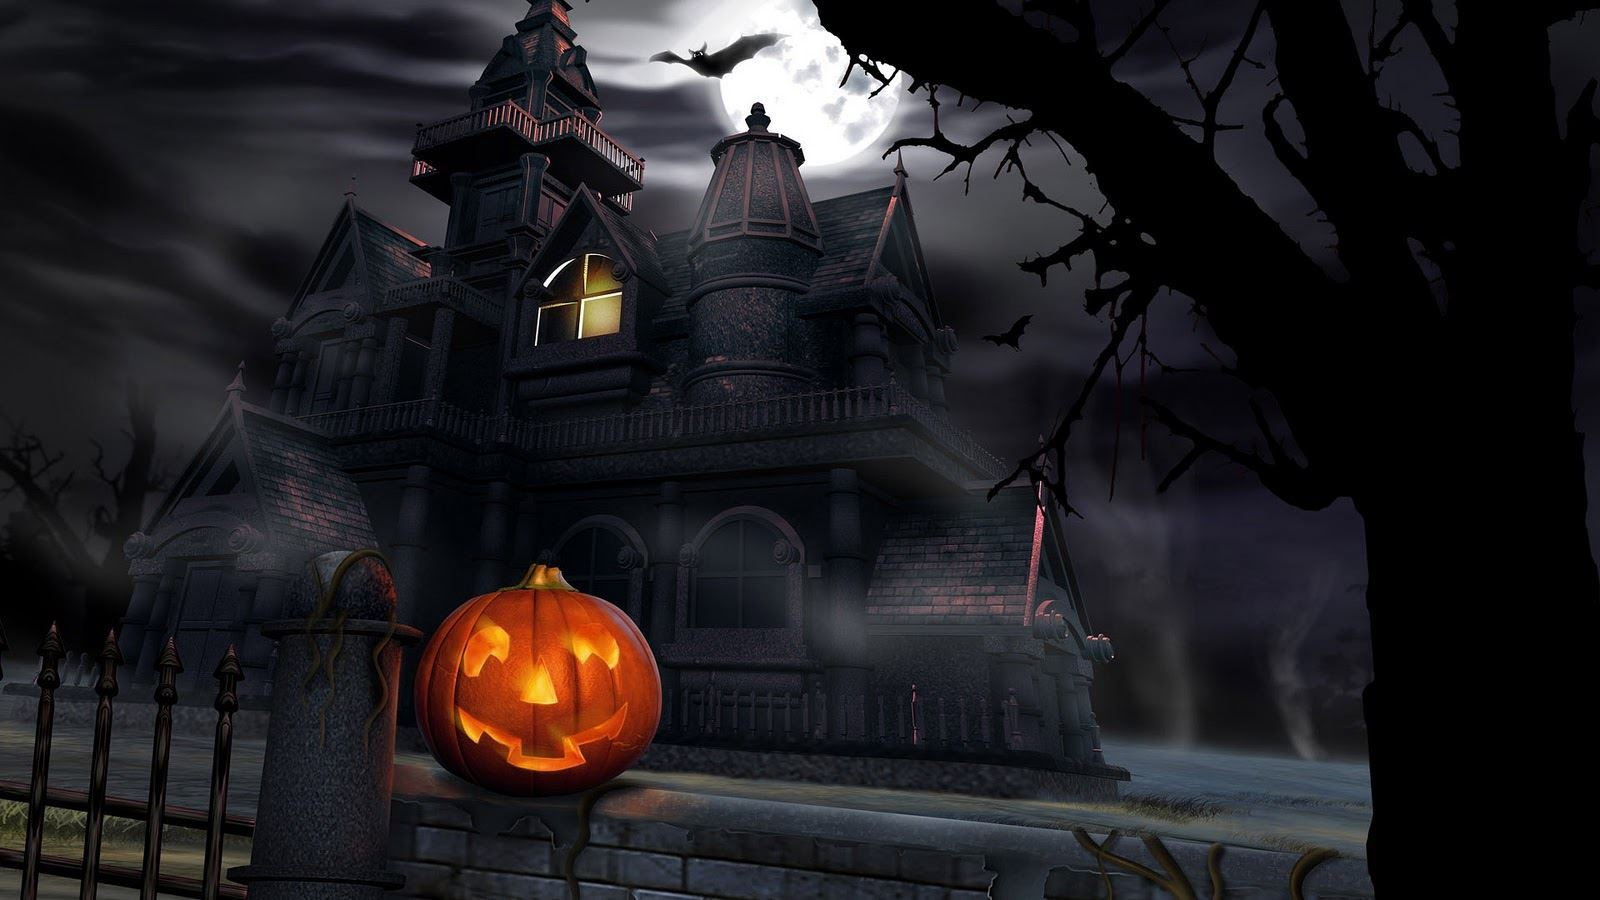 Download Free Halloween Wallpaper For Mac OS X El Capitan And Windows 10